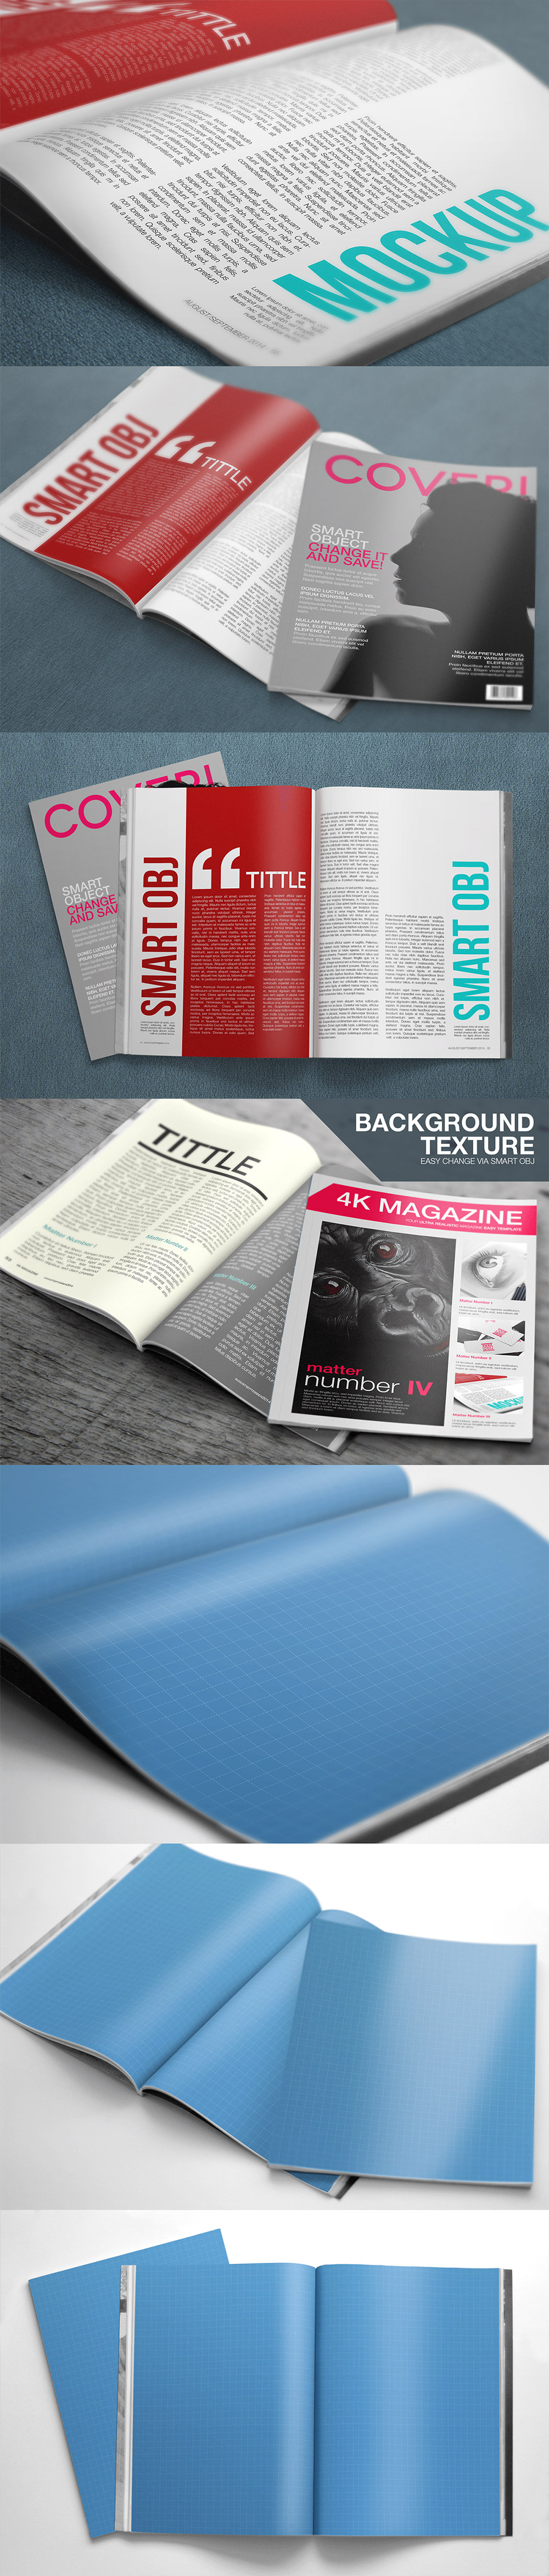 http://www.graphicsfuel.com/wp-content/uploads/2015/04/psd-magazine-mockups.jpg